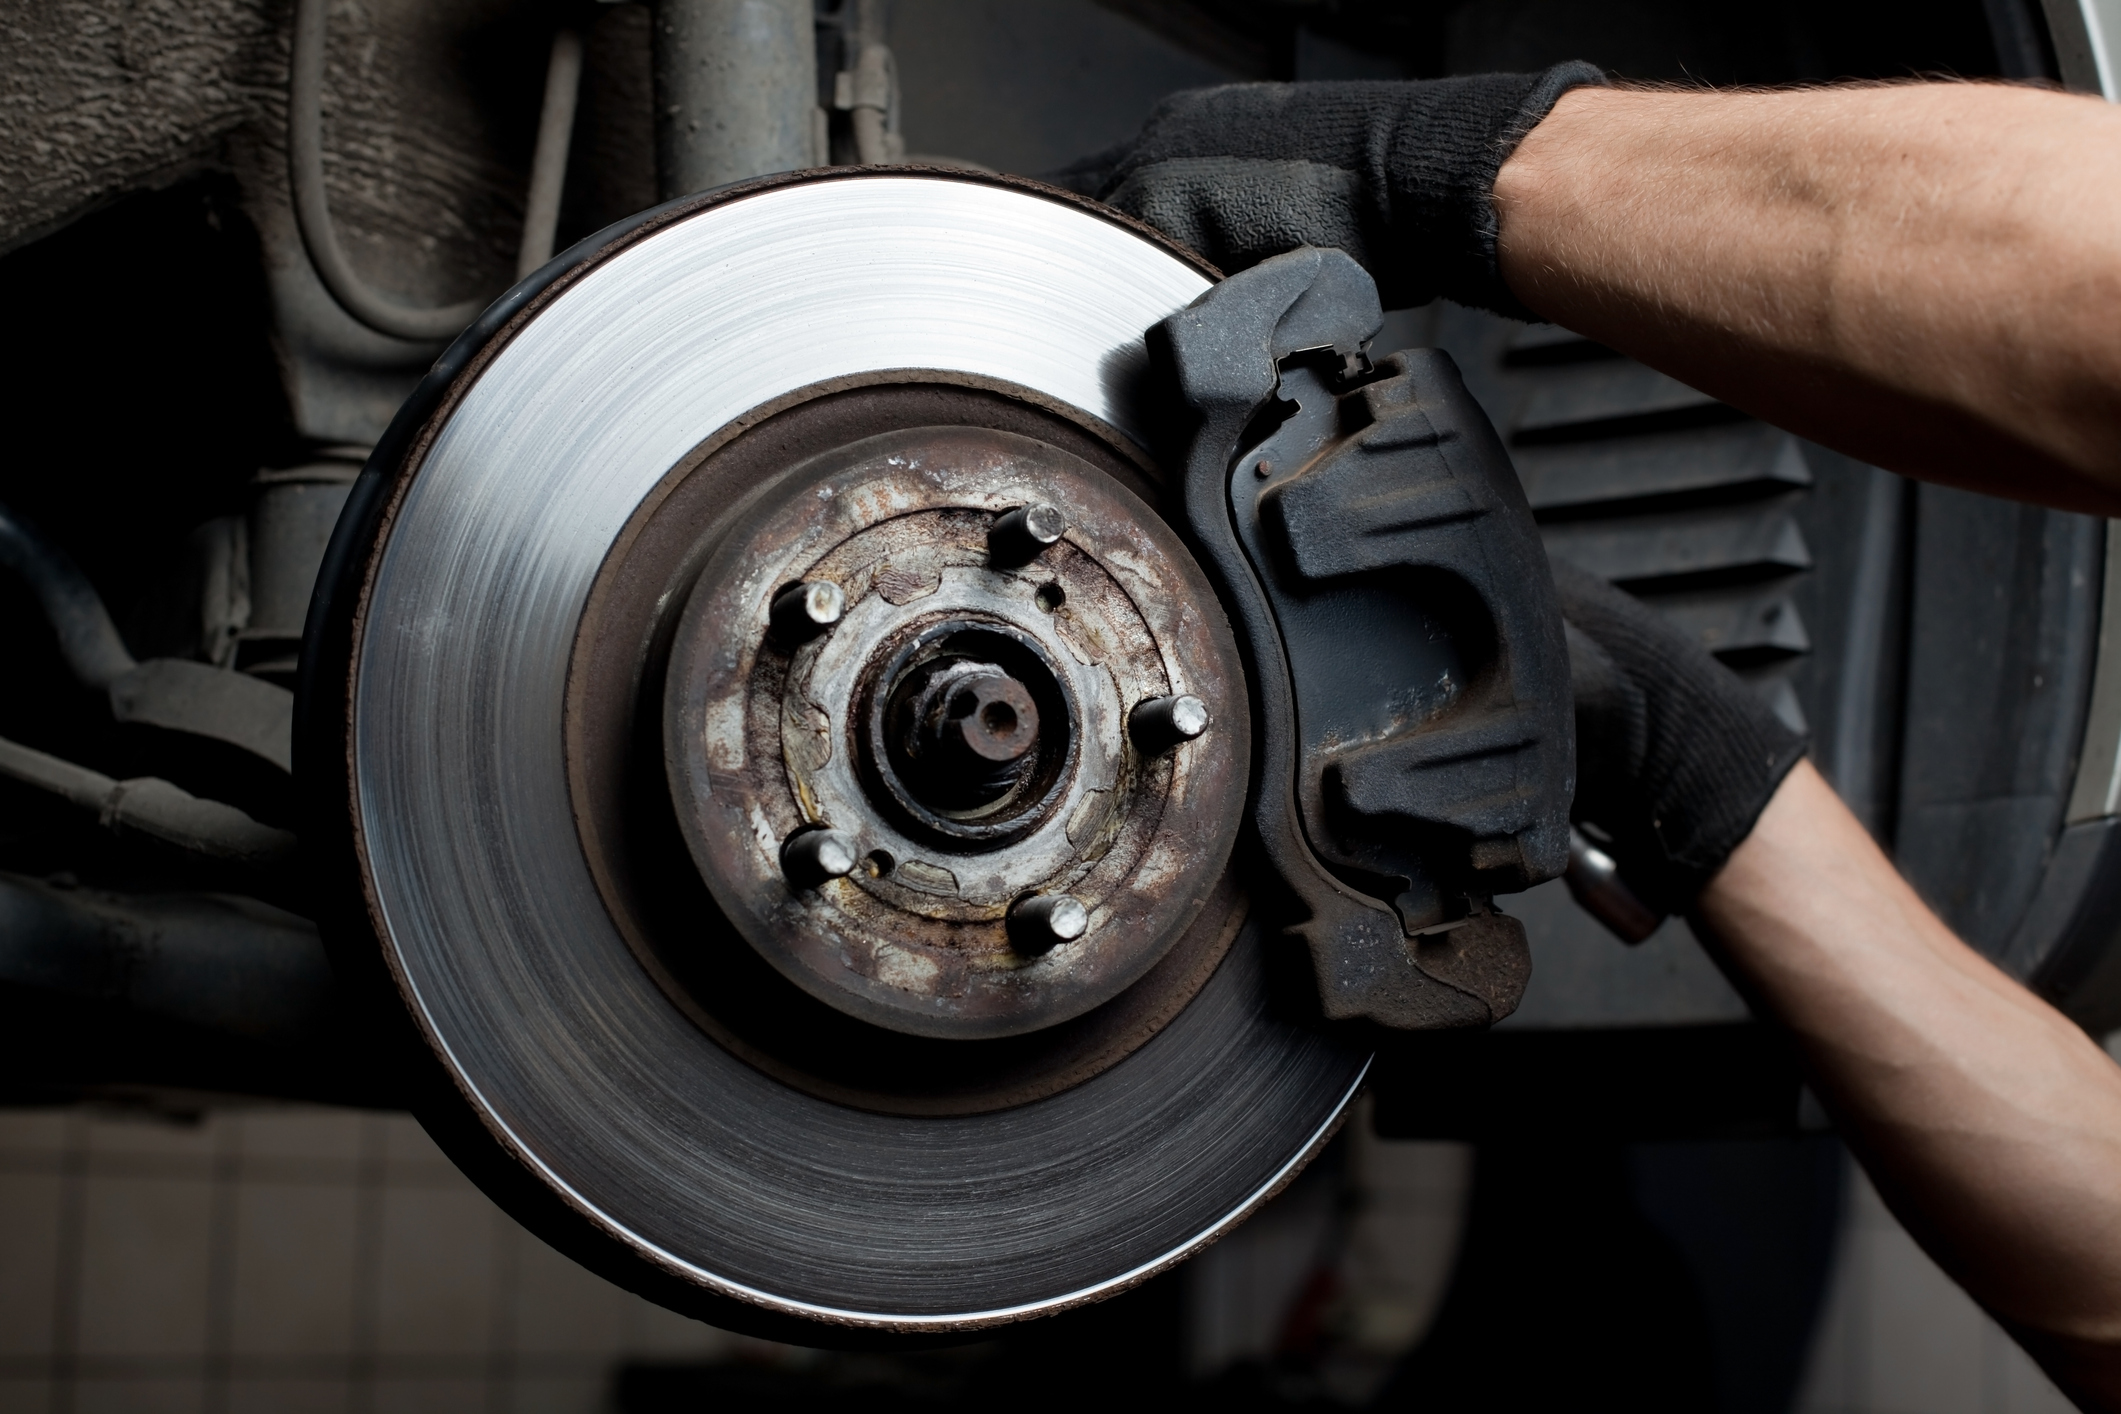 If your vehicles brakes are starting to fail or are showing signs of wear and tear, you should visit Scheller Automotive.